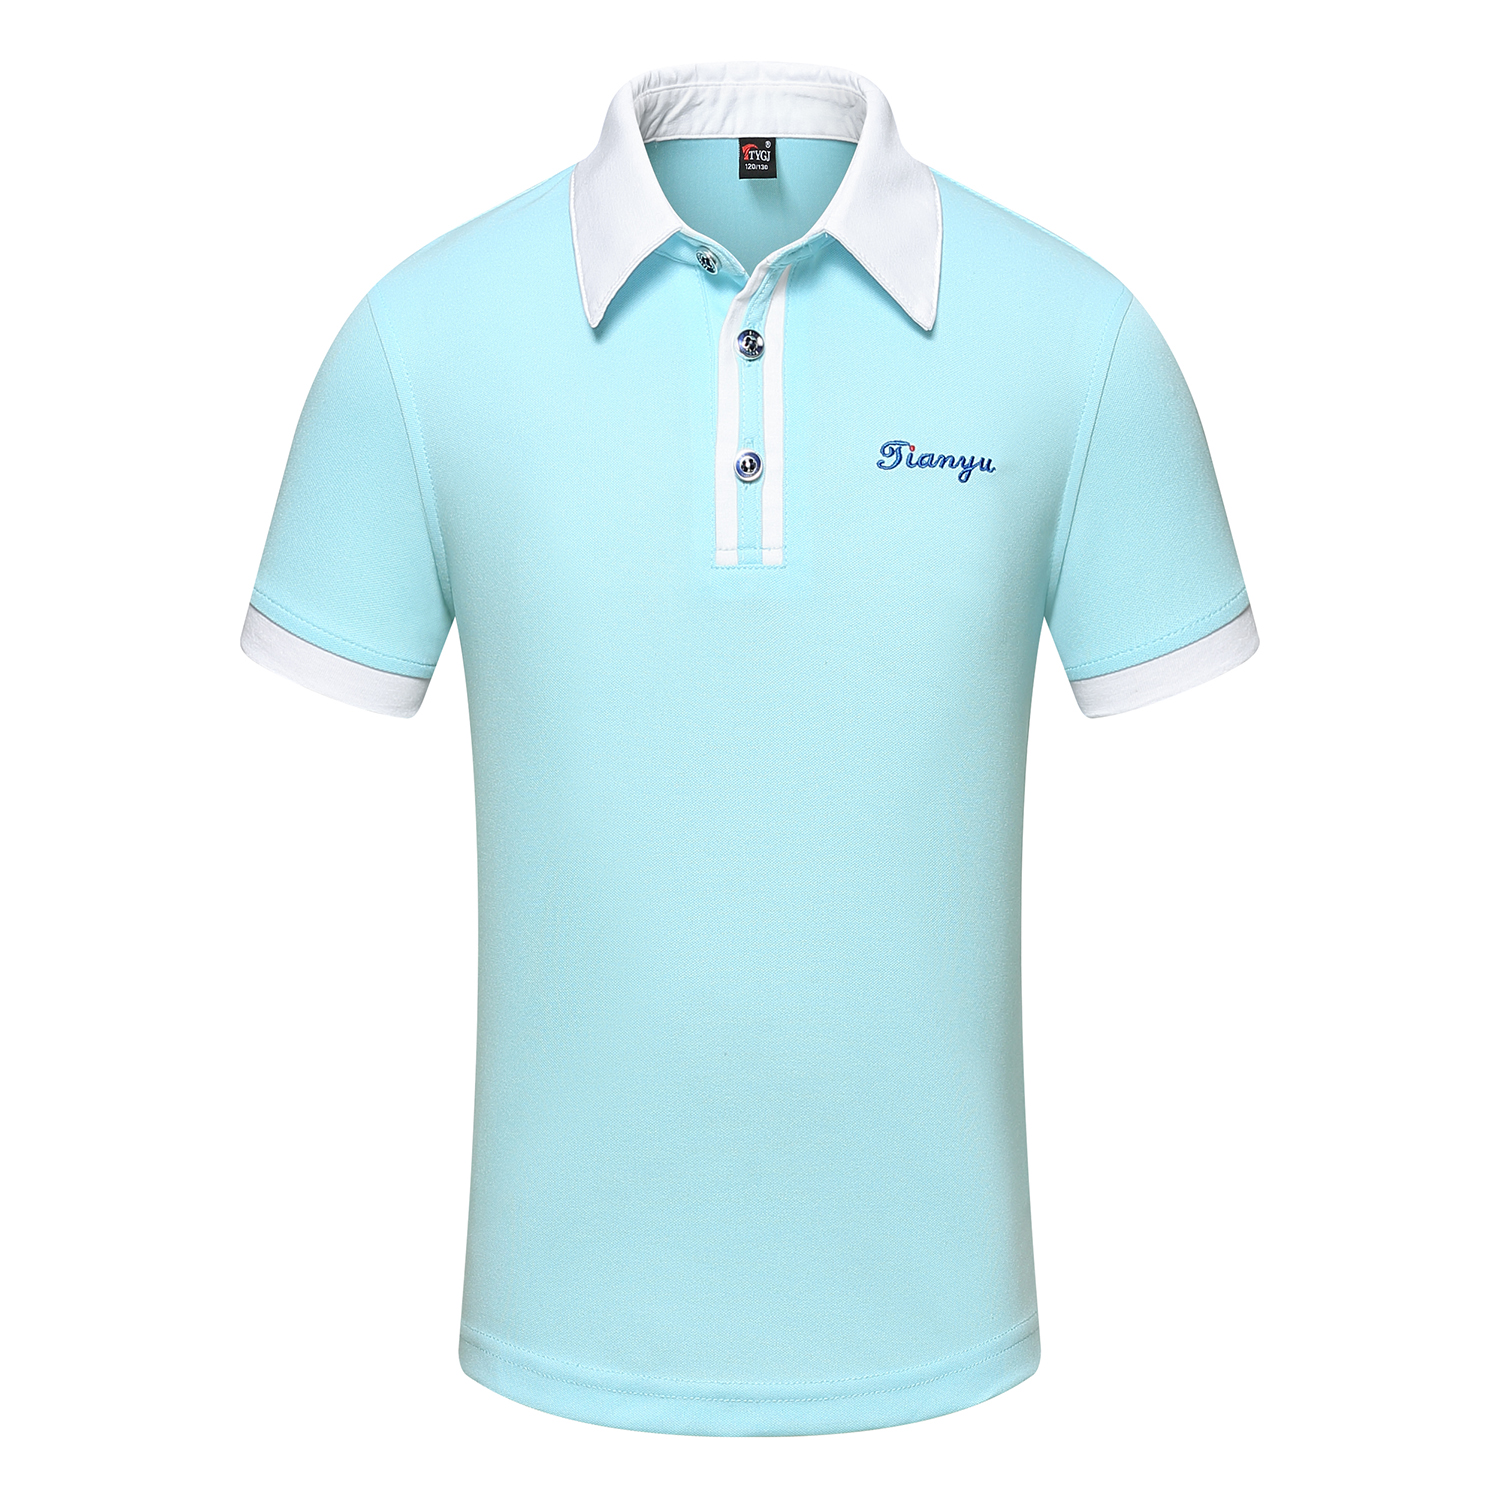 LIGHT BLUE POLO SHIRT FOR MEN AND WOMEN